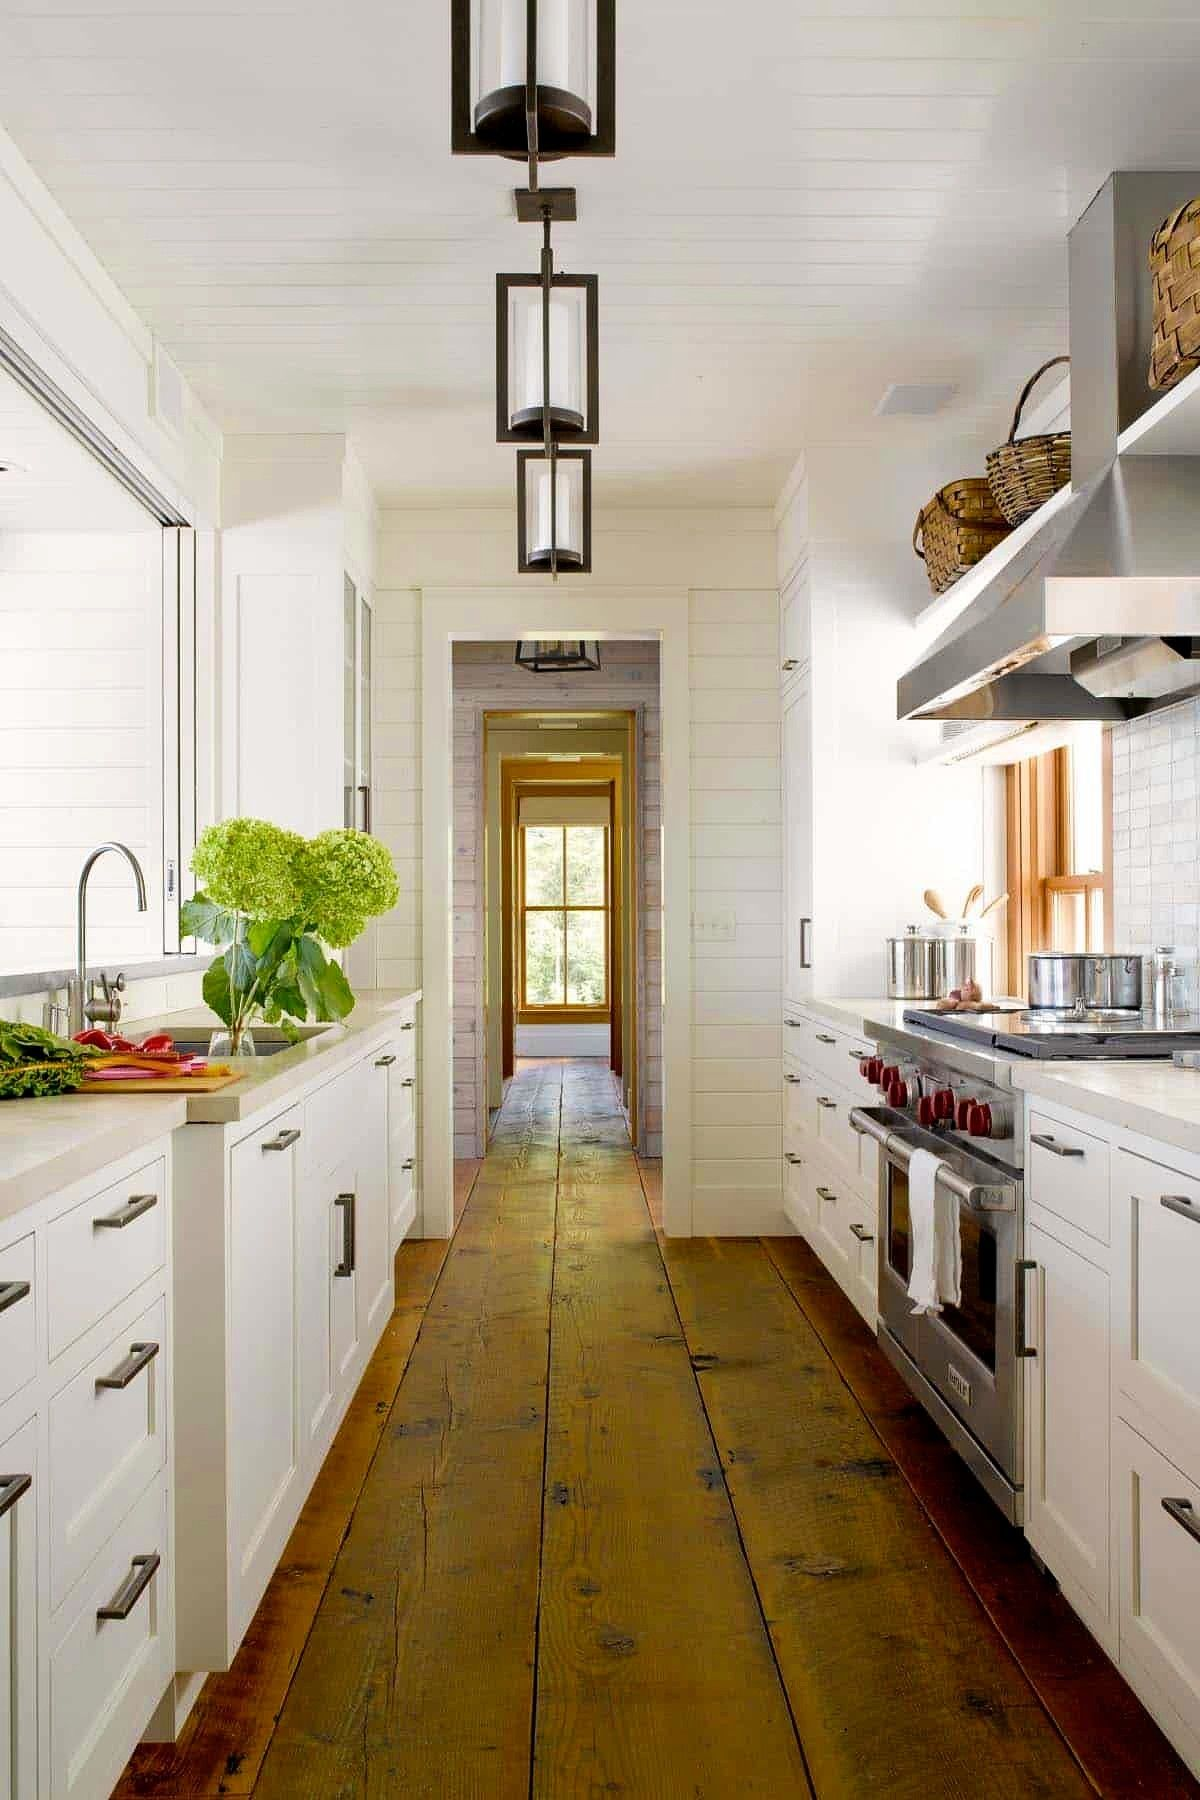 Make The Most Of Your Galley Kitchen With These Stylish Ideas Https Www Countryliving Galley Kitchen Renovation Galley Kitchen Design Galley Kitchen Layout